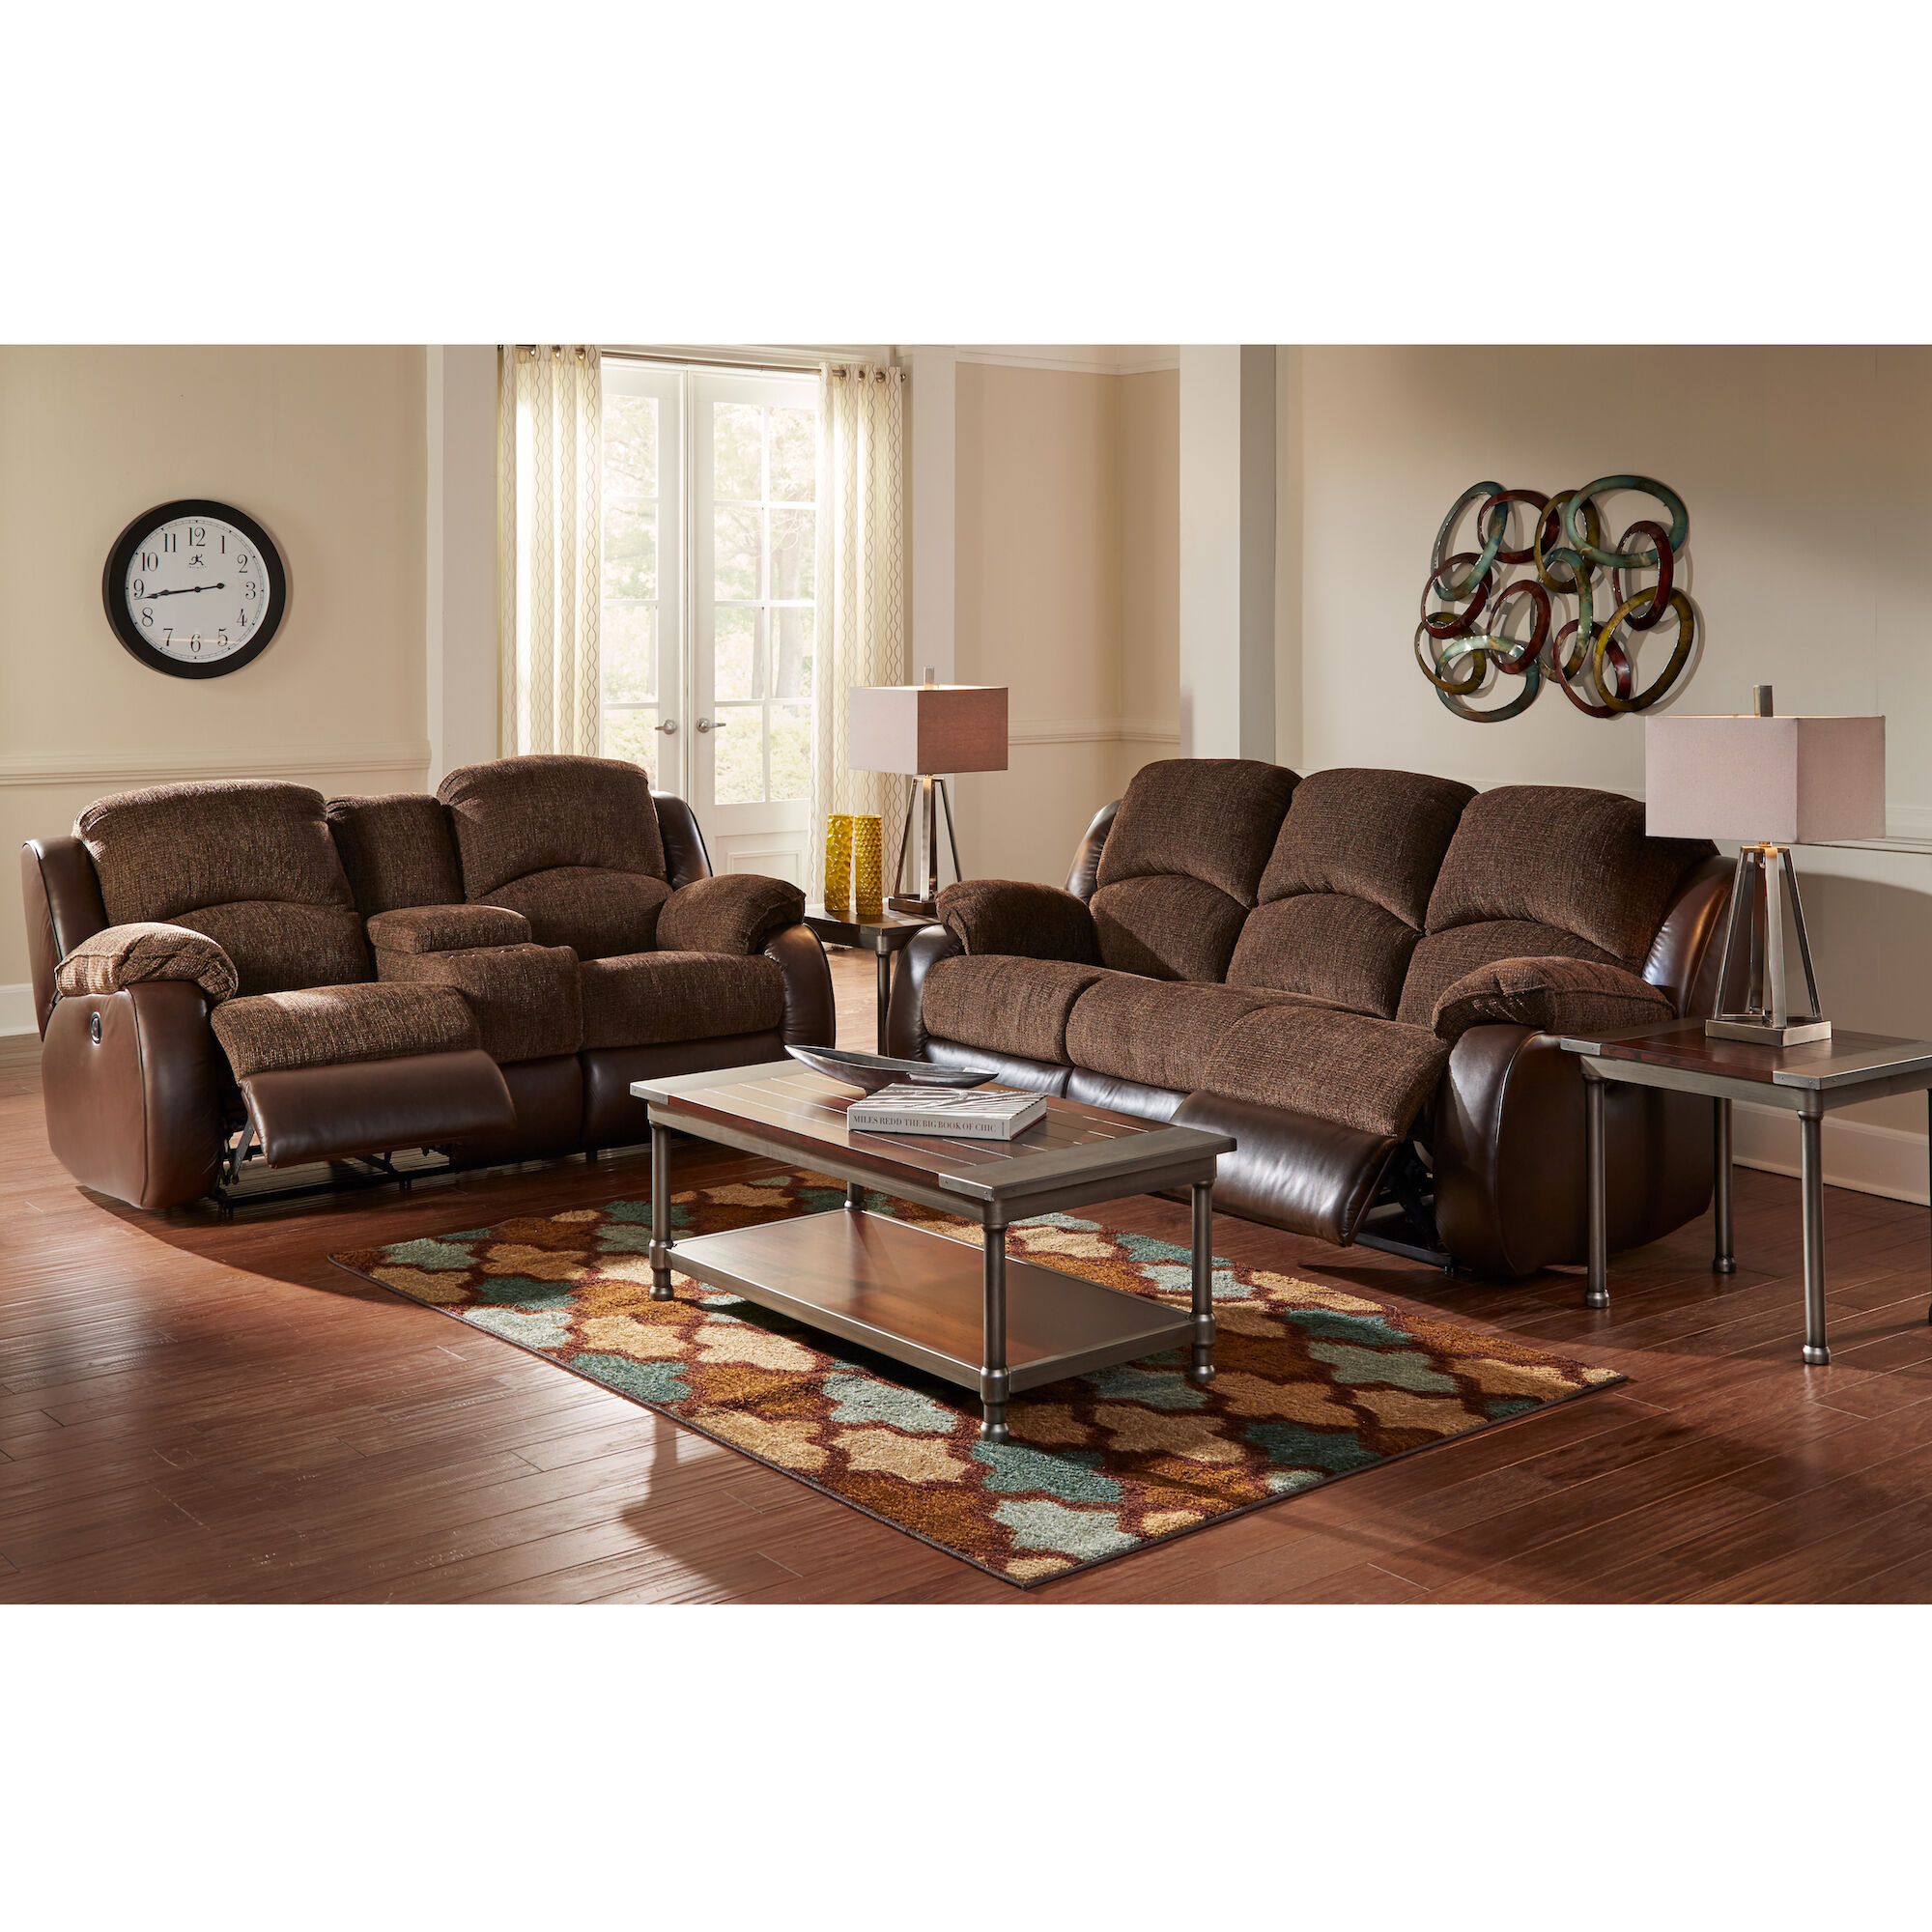 cheap 2 piece living room sets gypsum ceiling designs for india woodhaven industries sofa loveseat memphis reclining collection